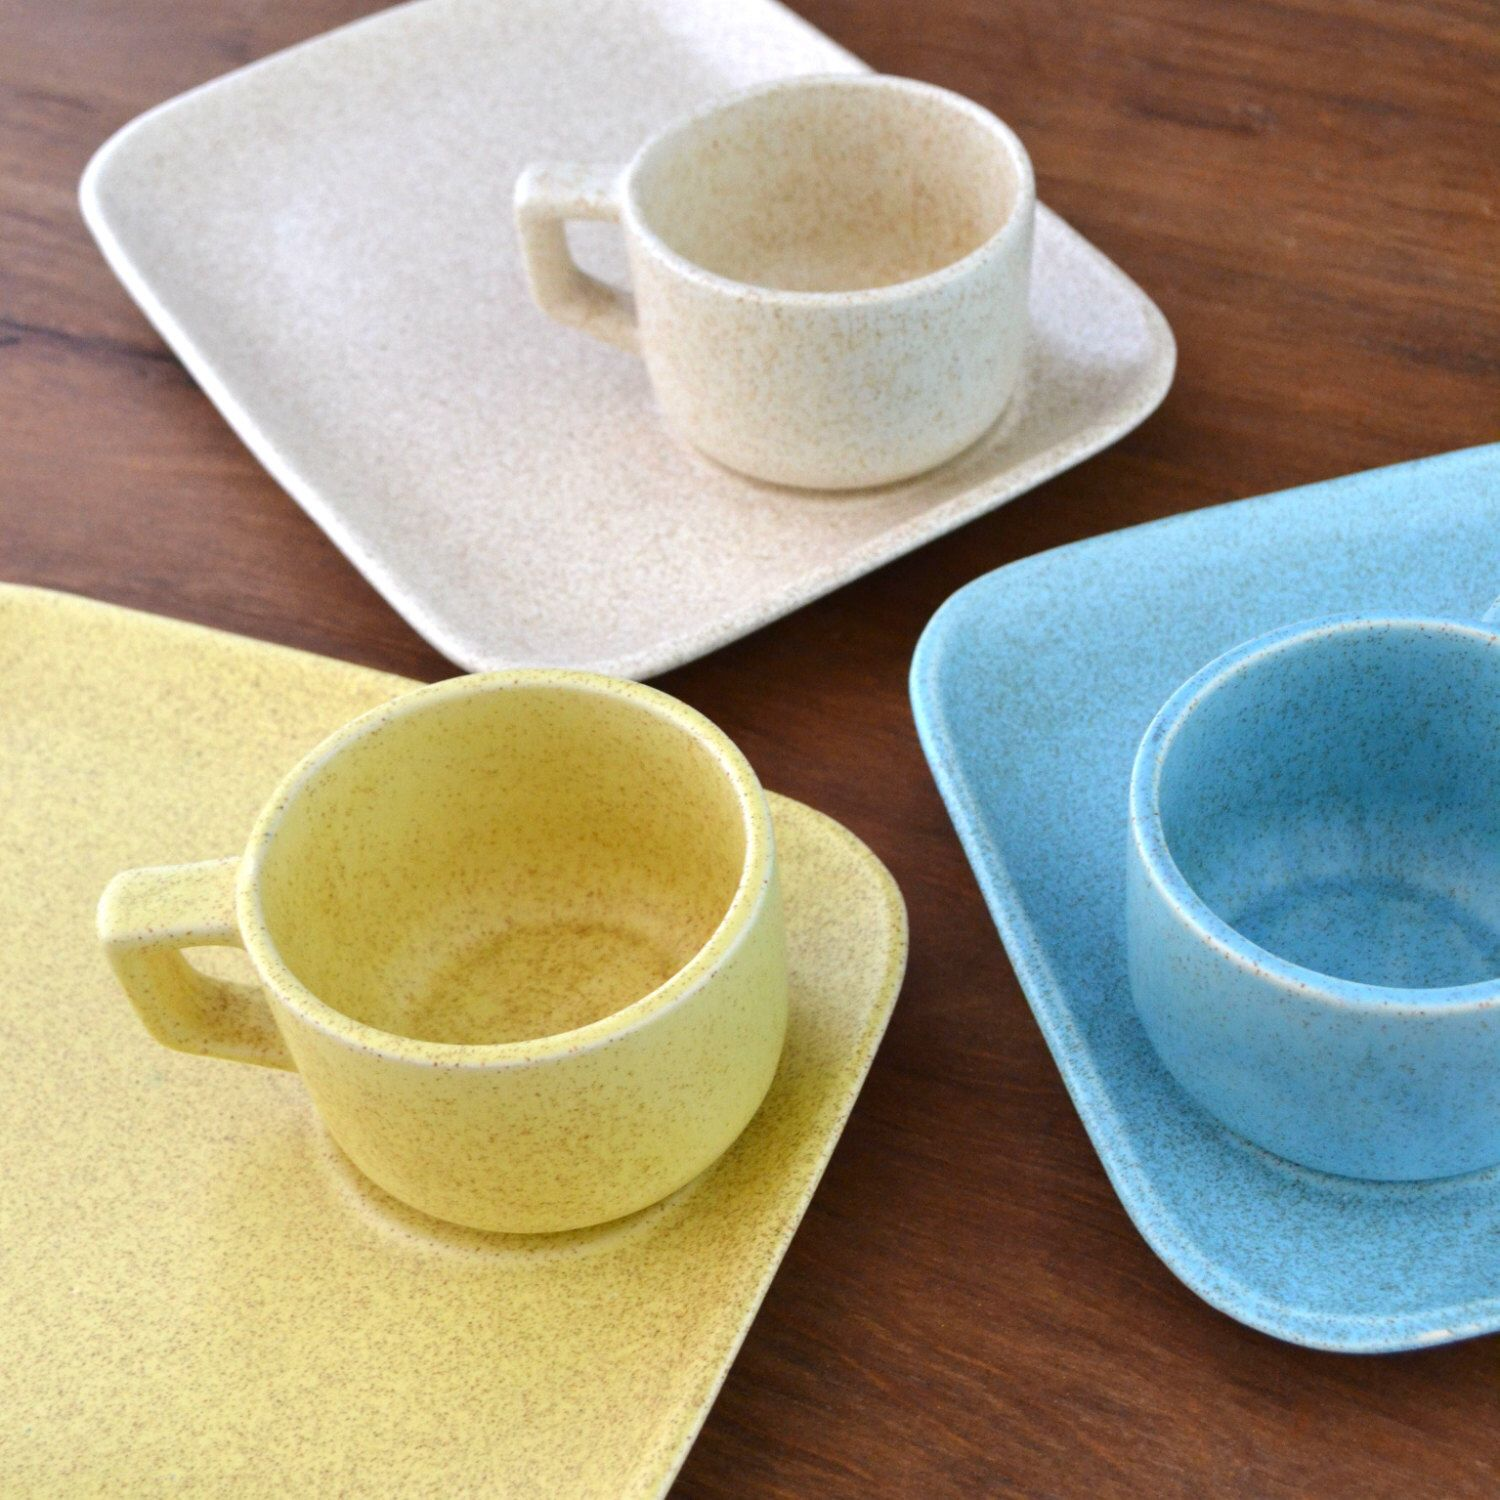 Vintage Soup and Sandwich Set - Snack Set Tray - McCoy Dinnerware - Pastel Speckleware - : mccoy dinnerware - pezcame.com